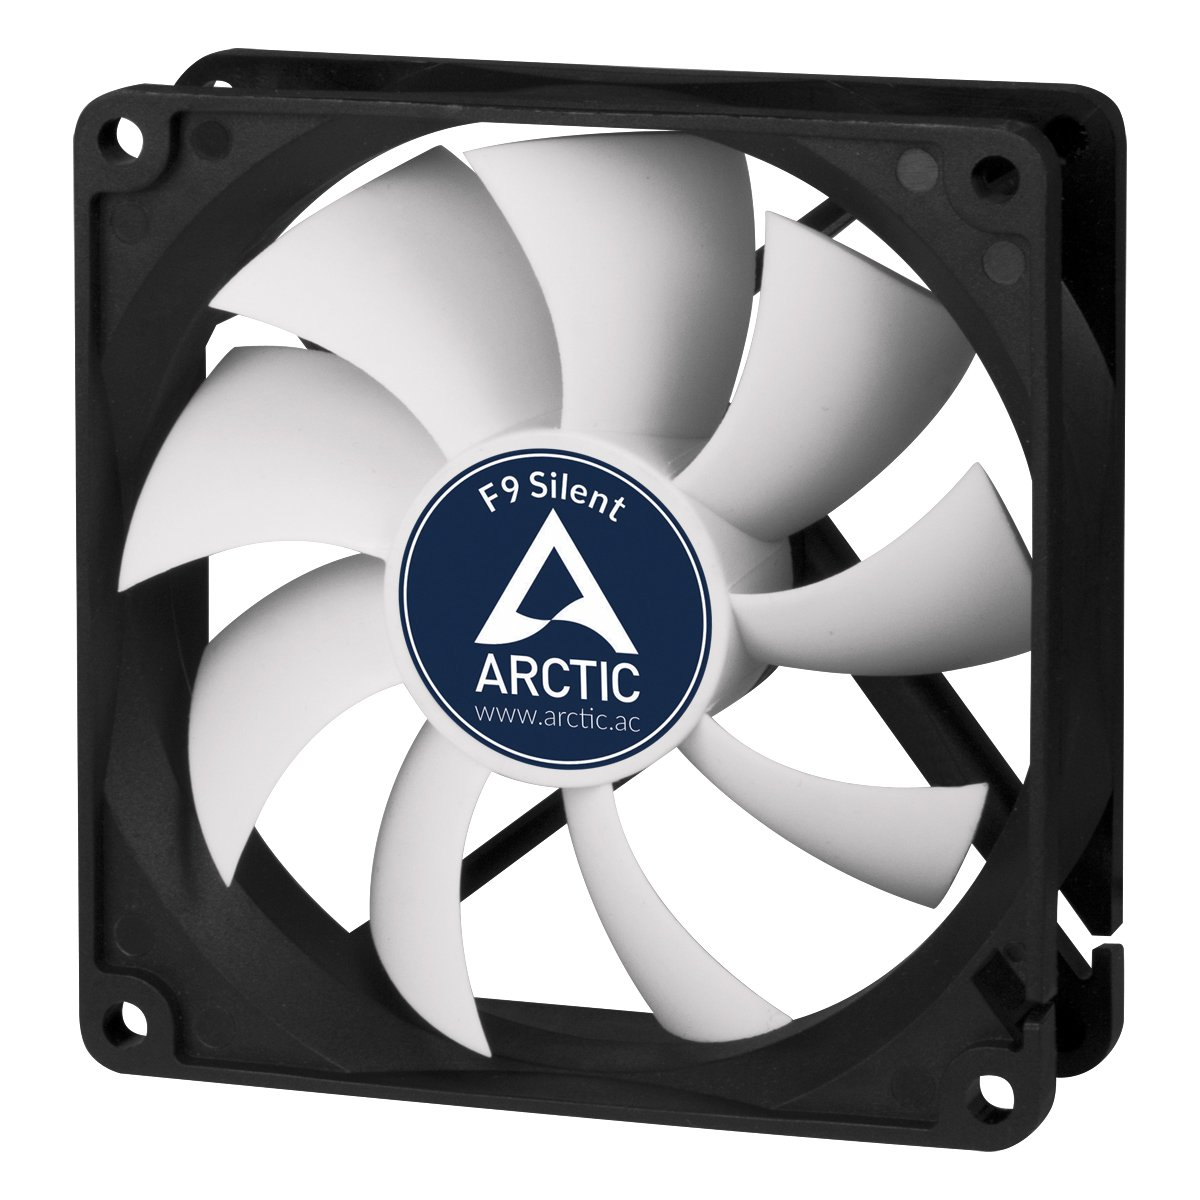 Amazon.com: ARCTIC F9 Silent - Ultra-Quiet 92 mm Case Fan | Silent Cooler  with Standard Case I Almost inaudible | Push- or Pull Configuration  Possible: ...